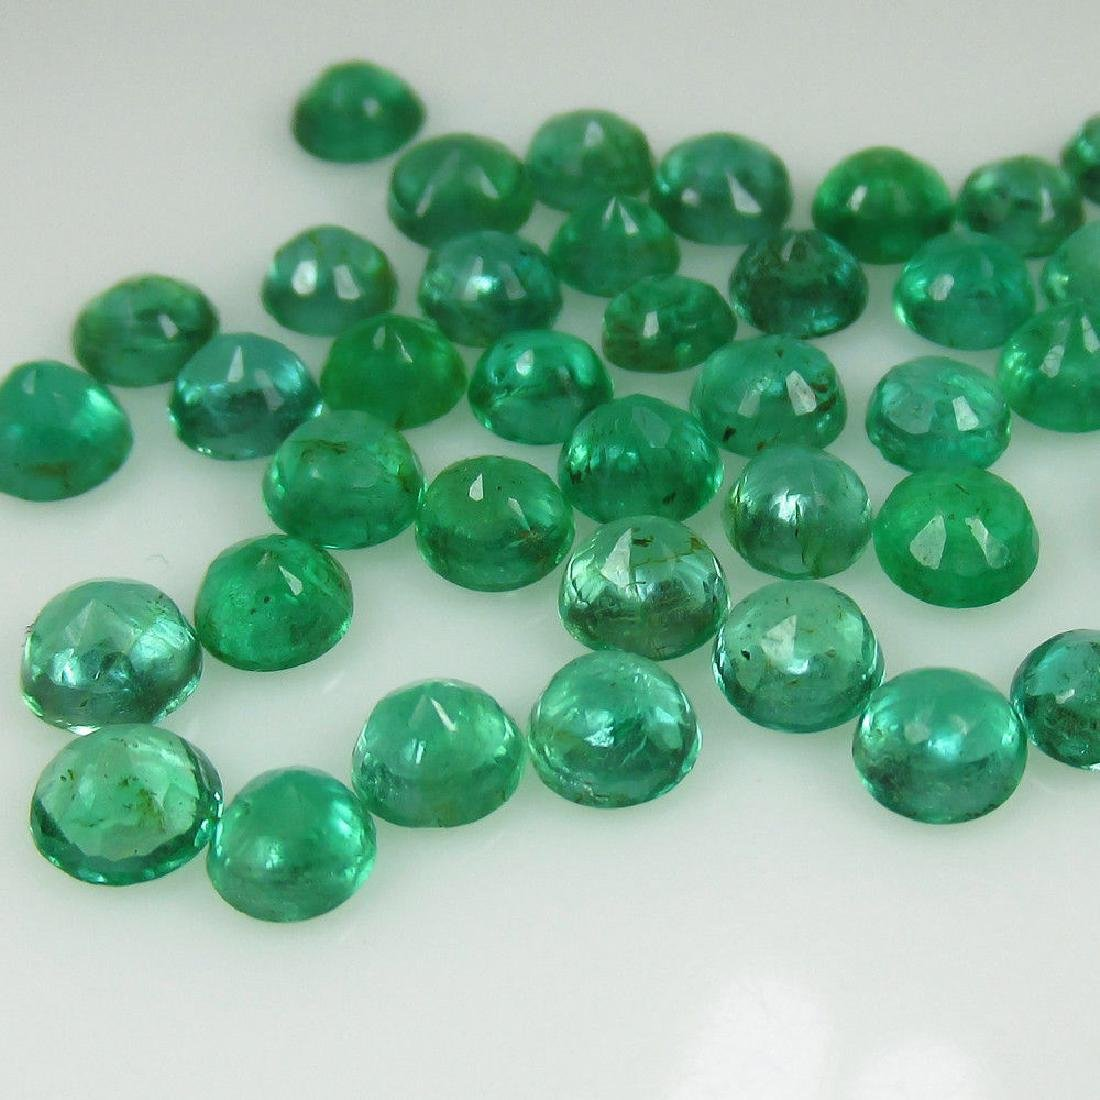 10.55 Ct Genuine 49 Loose Zambian Emerald Excellent - 2